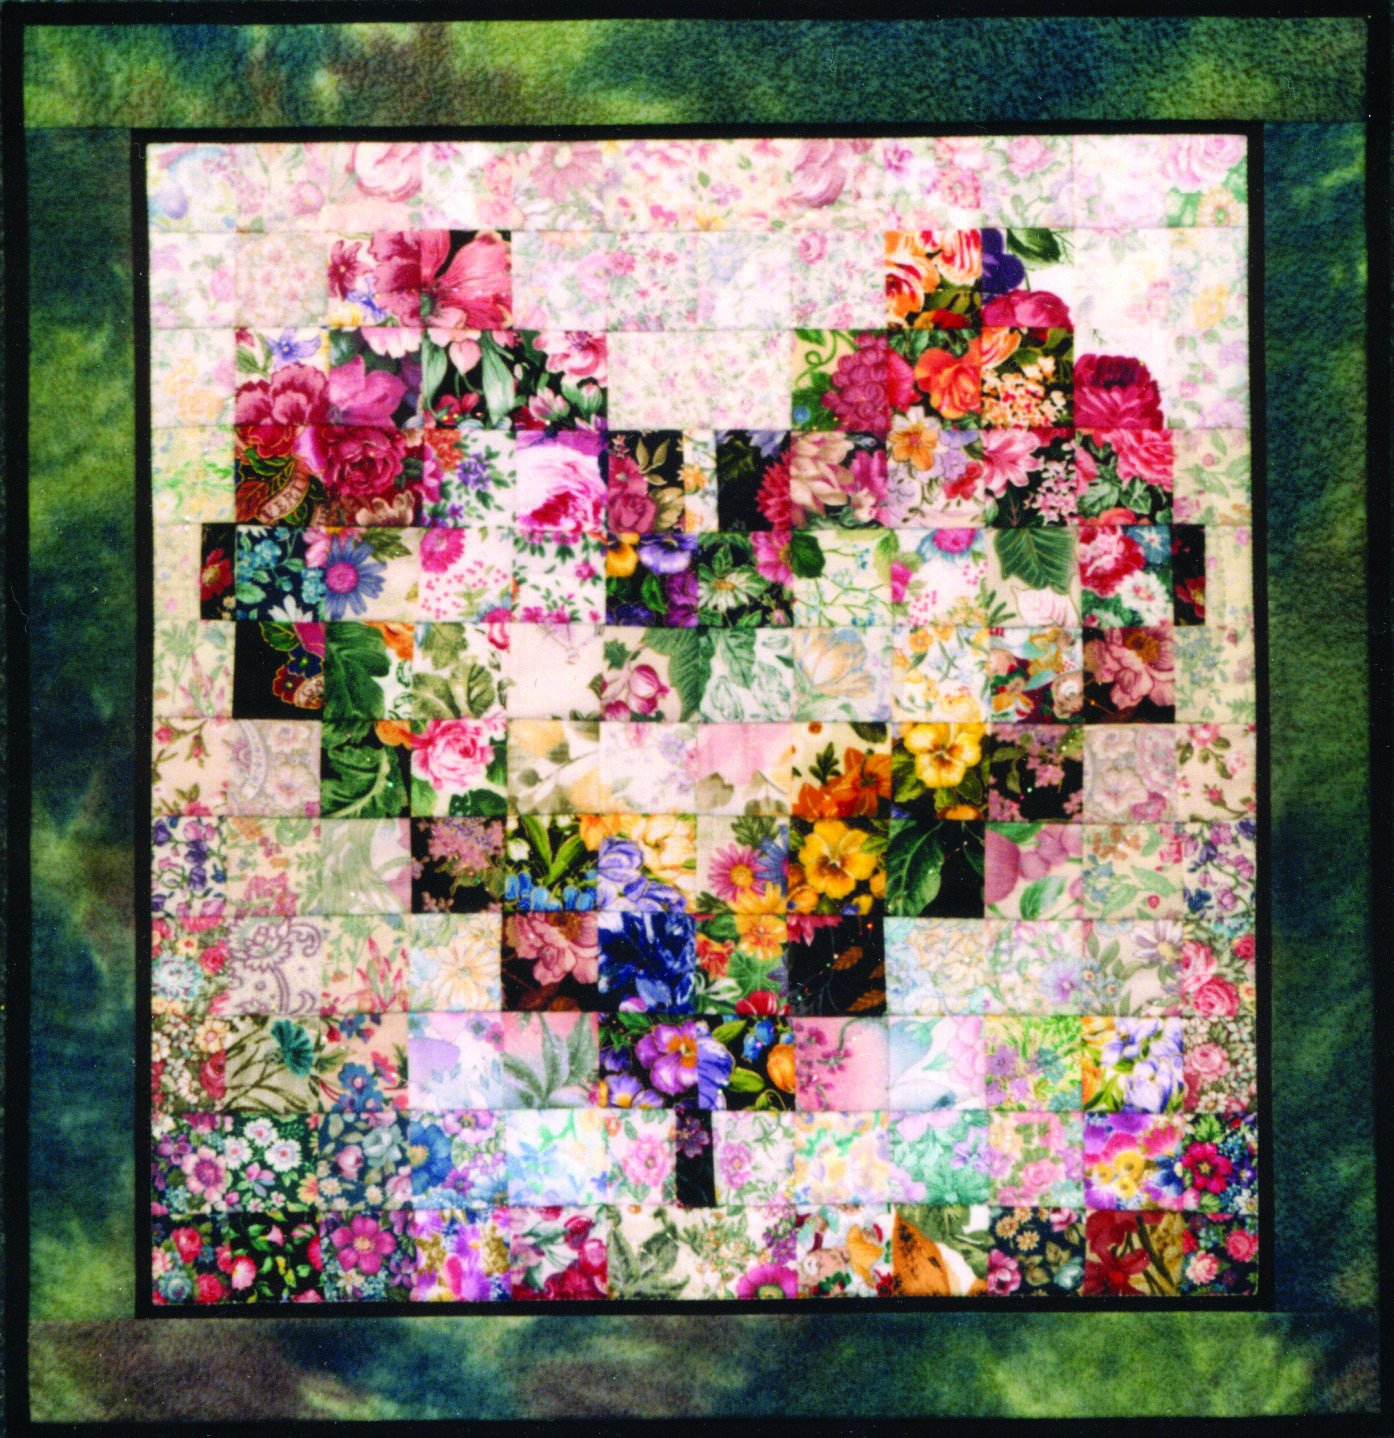 Amazon.com: Whims Watercolor Quilt Kits Heart In Bloom Quilting ... : quilts kits - Adamdwight.com